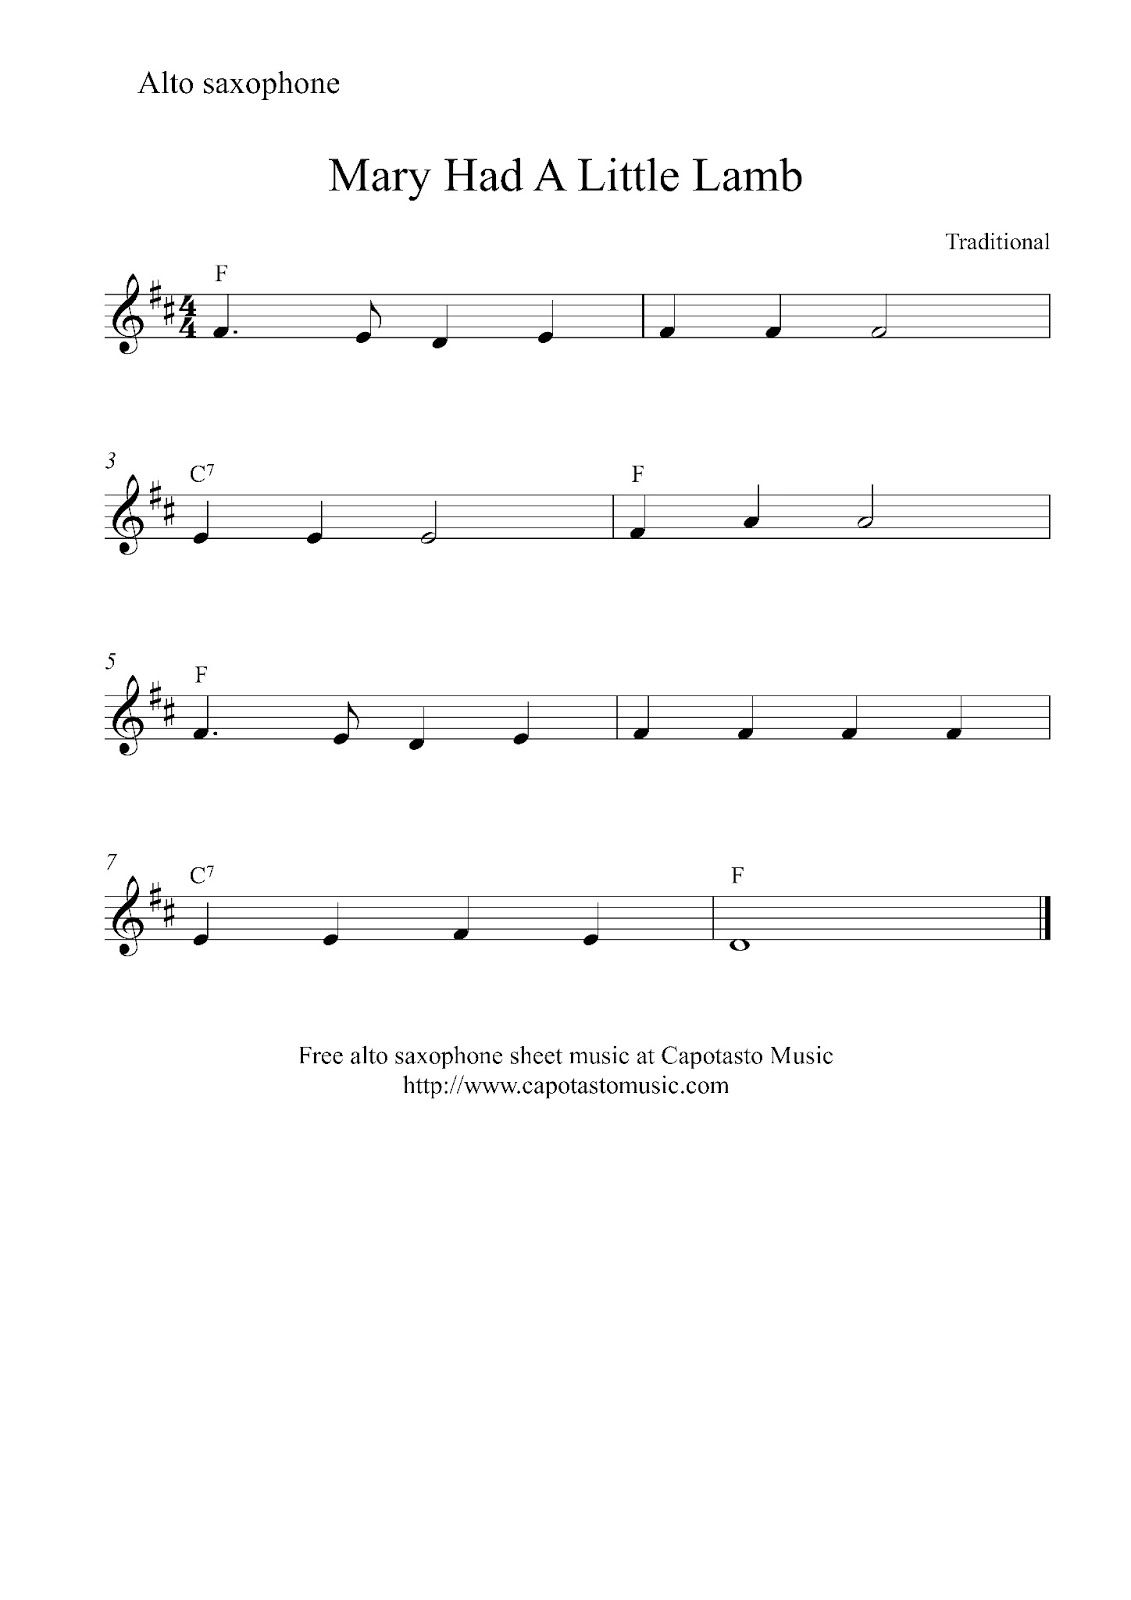 Mary Had A Little Lamb Sheet Music For Alto Sax Free Easy Alto